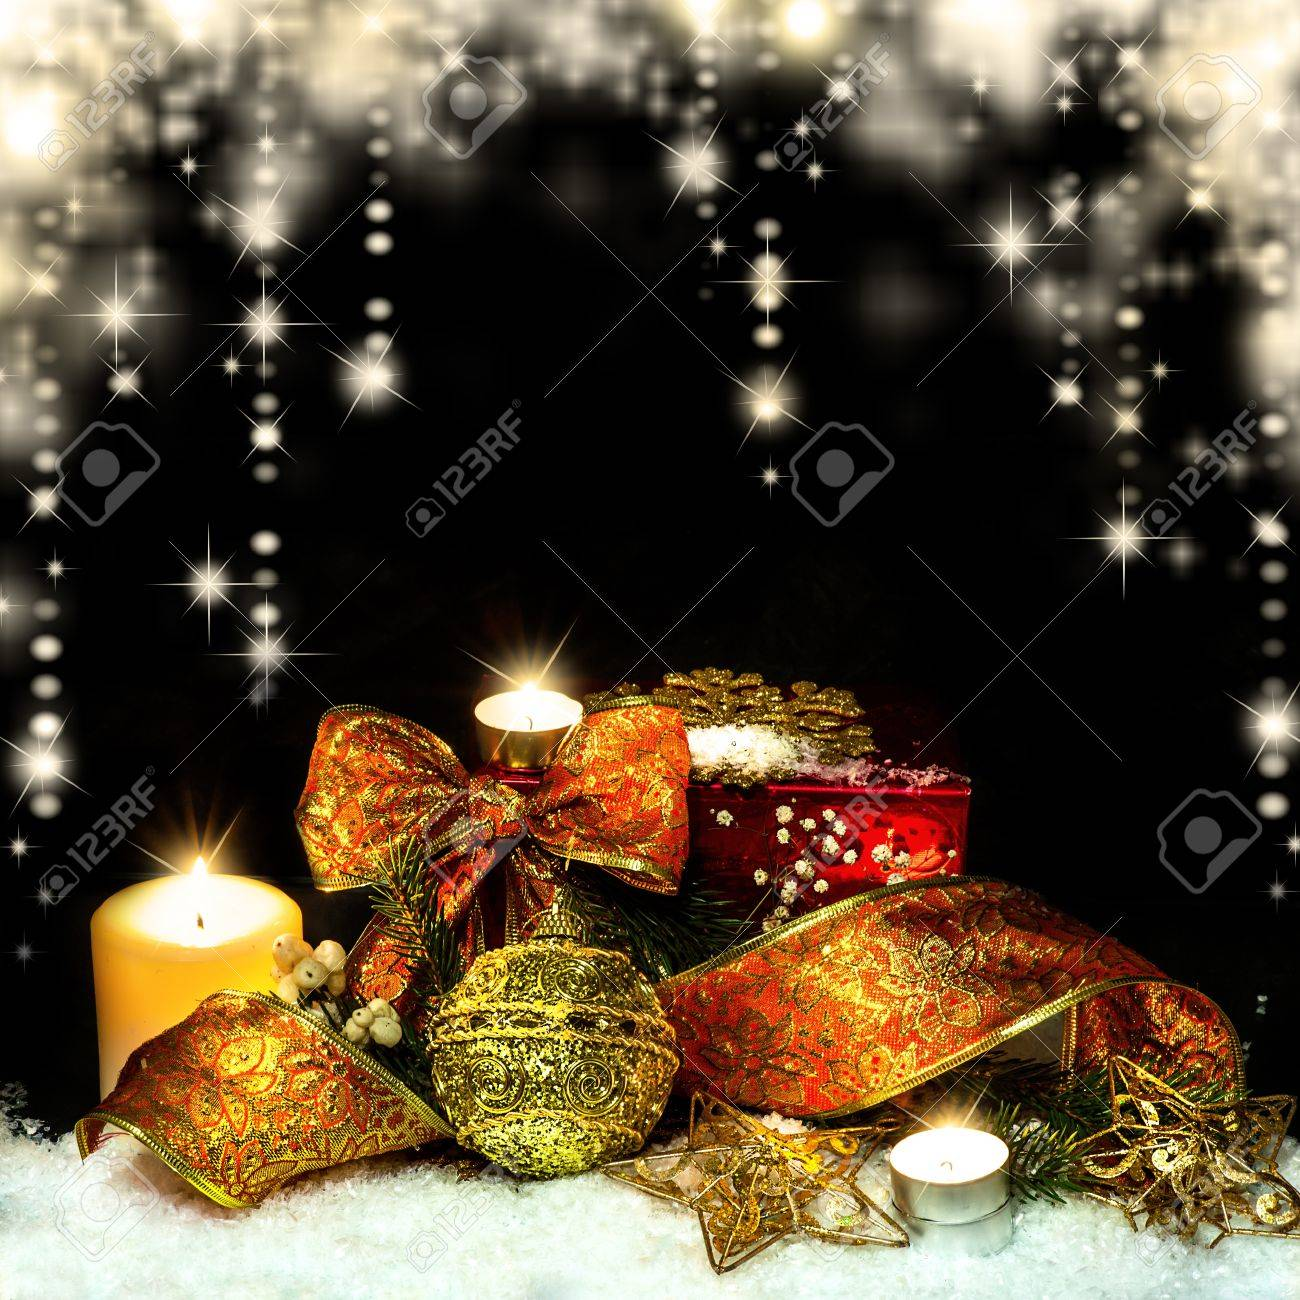 Christmas Decorations background - ribbon; ball, tree candles on fir tree branch Stock Photo - 16392890